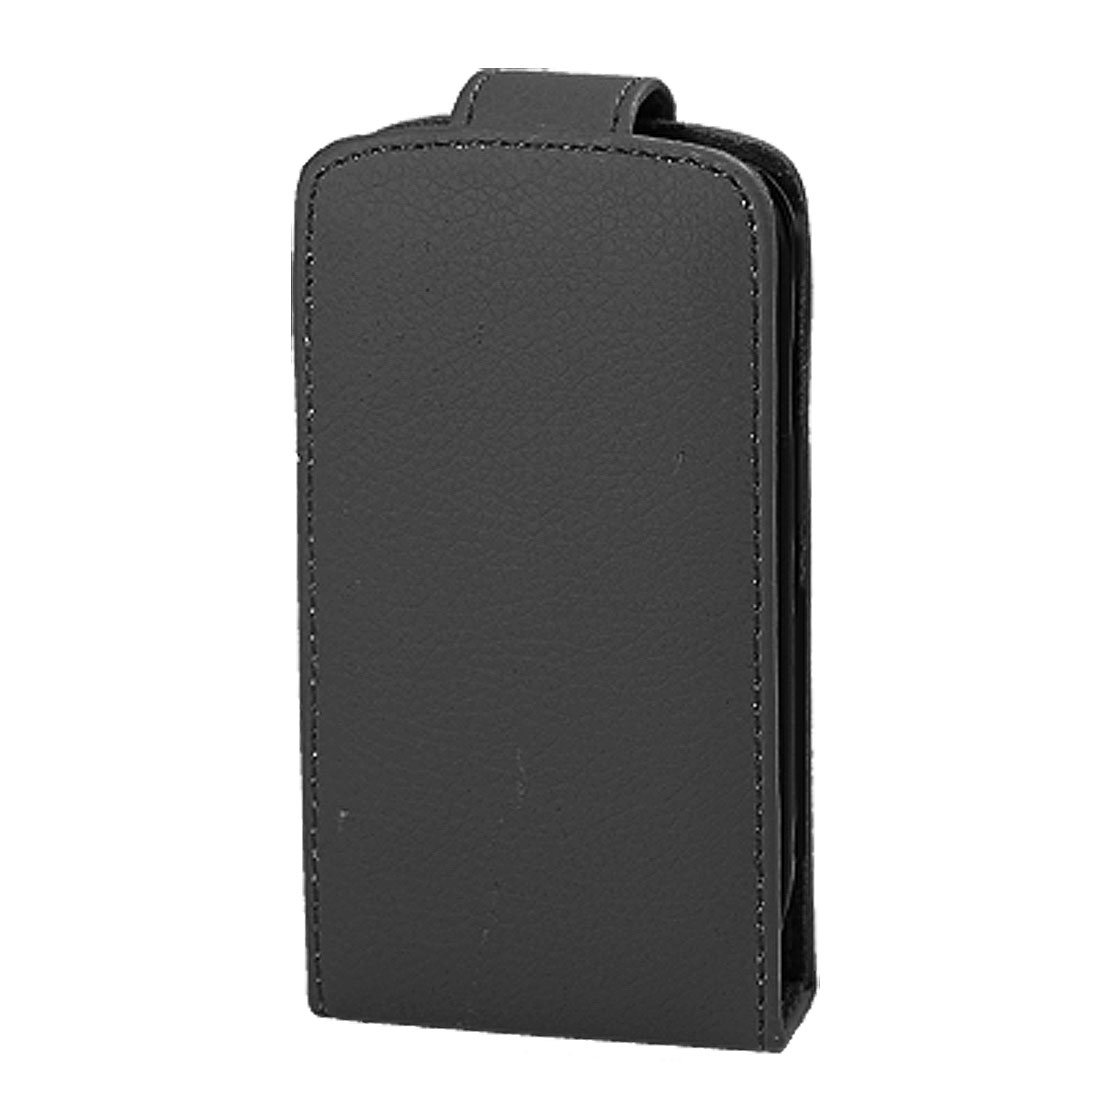 Vertical Black Faux Leather Pouch Case for iPhone 3G